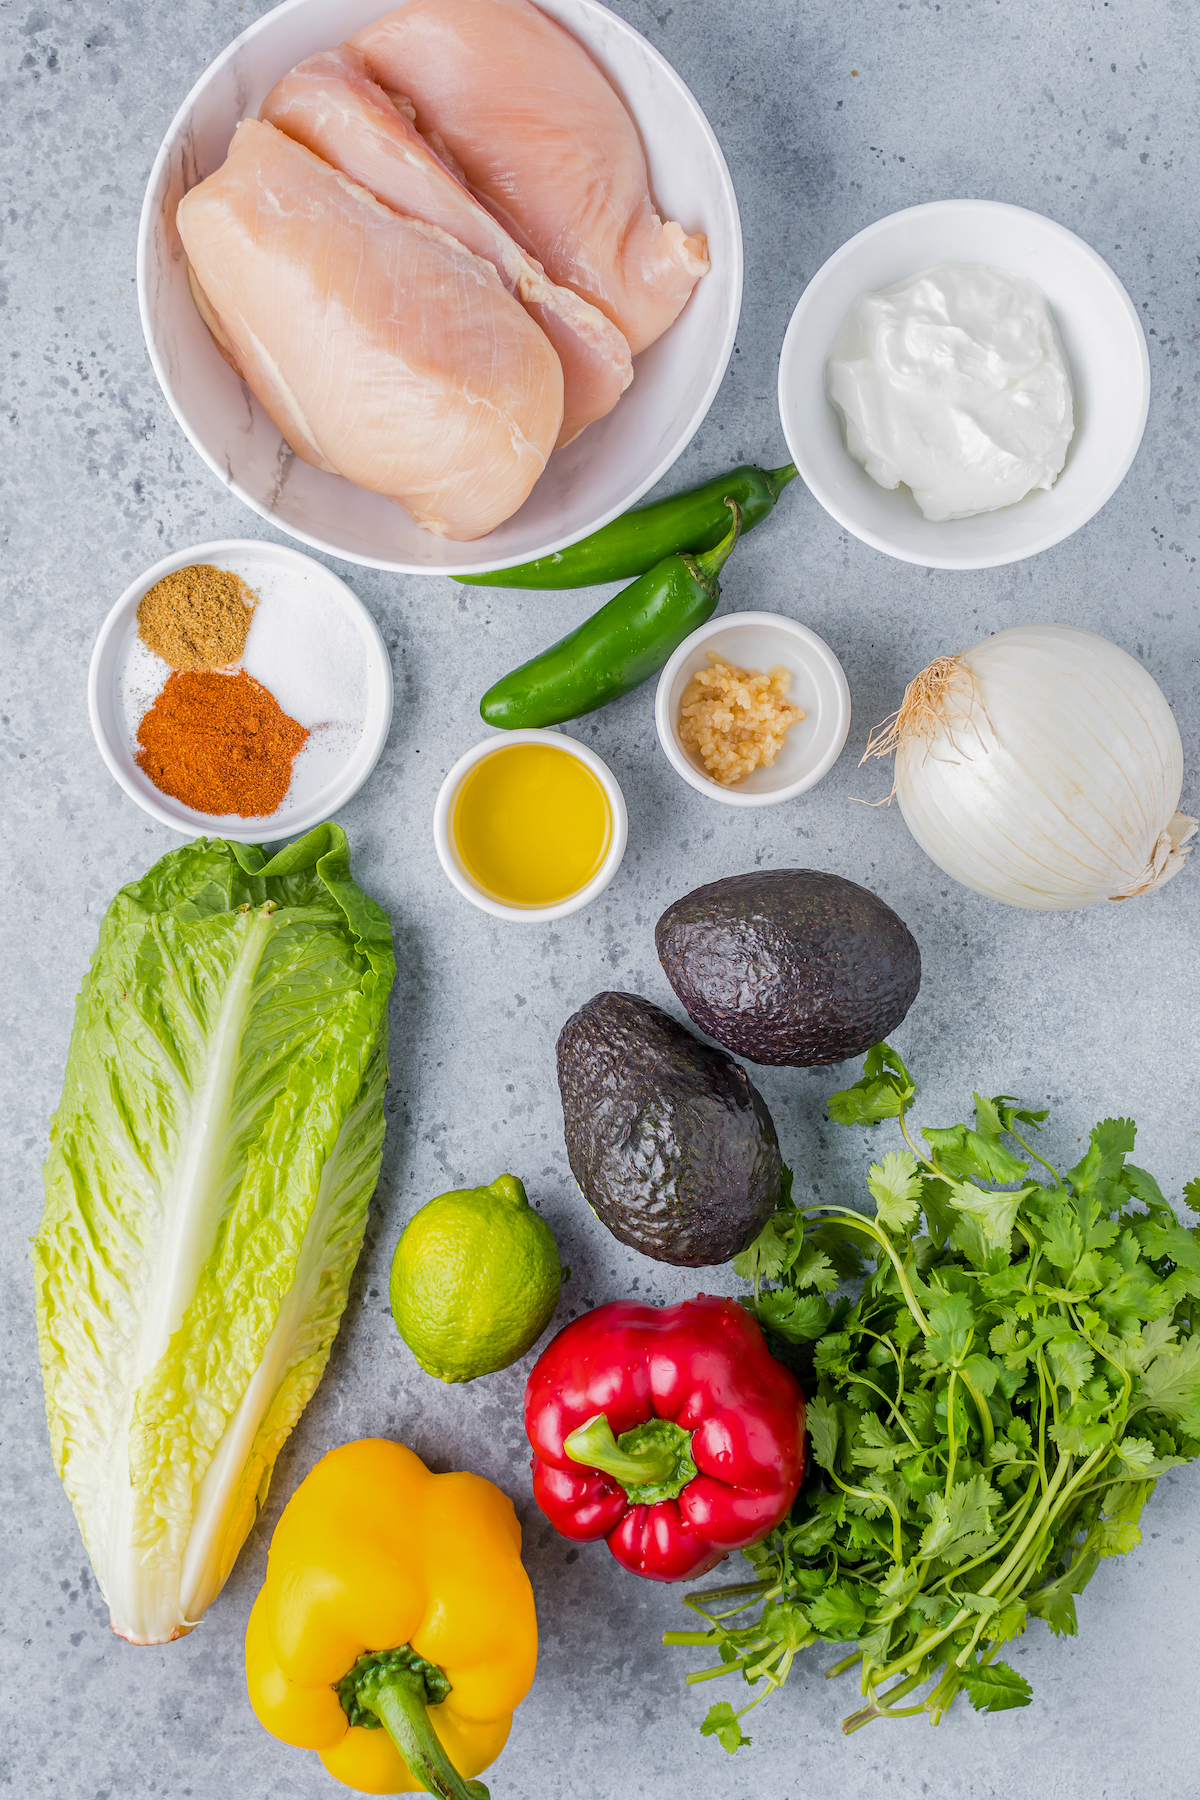 Ingredients for air fryer chicken fajita salad.